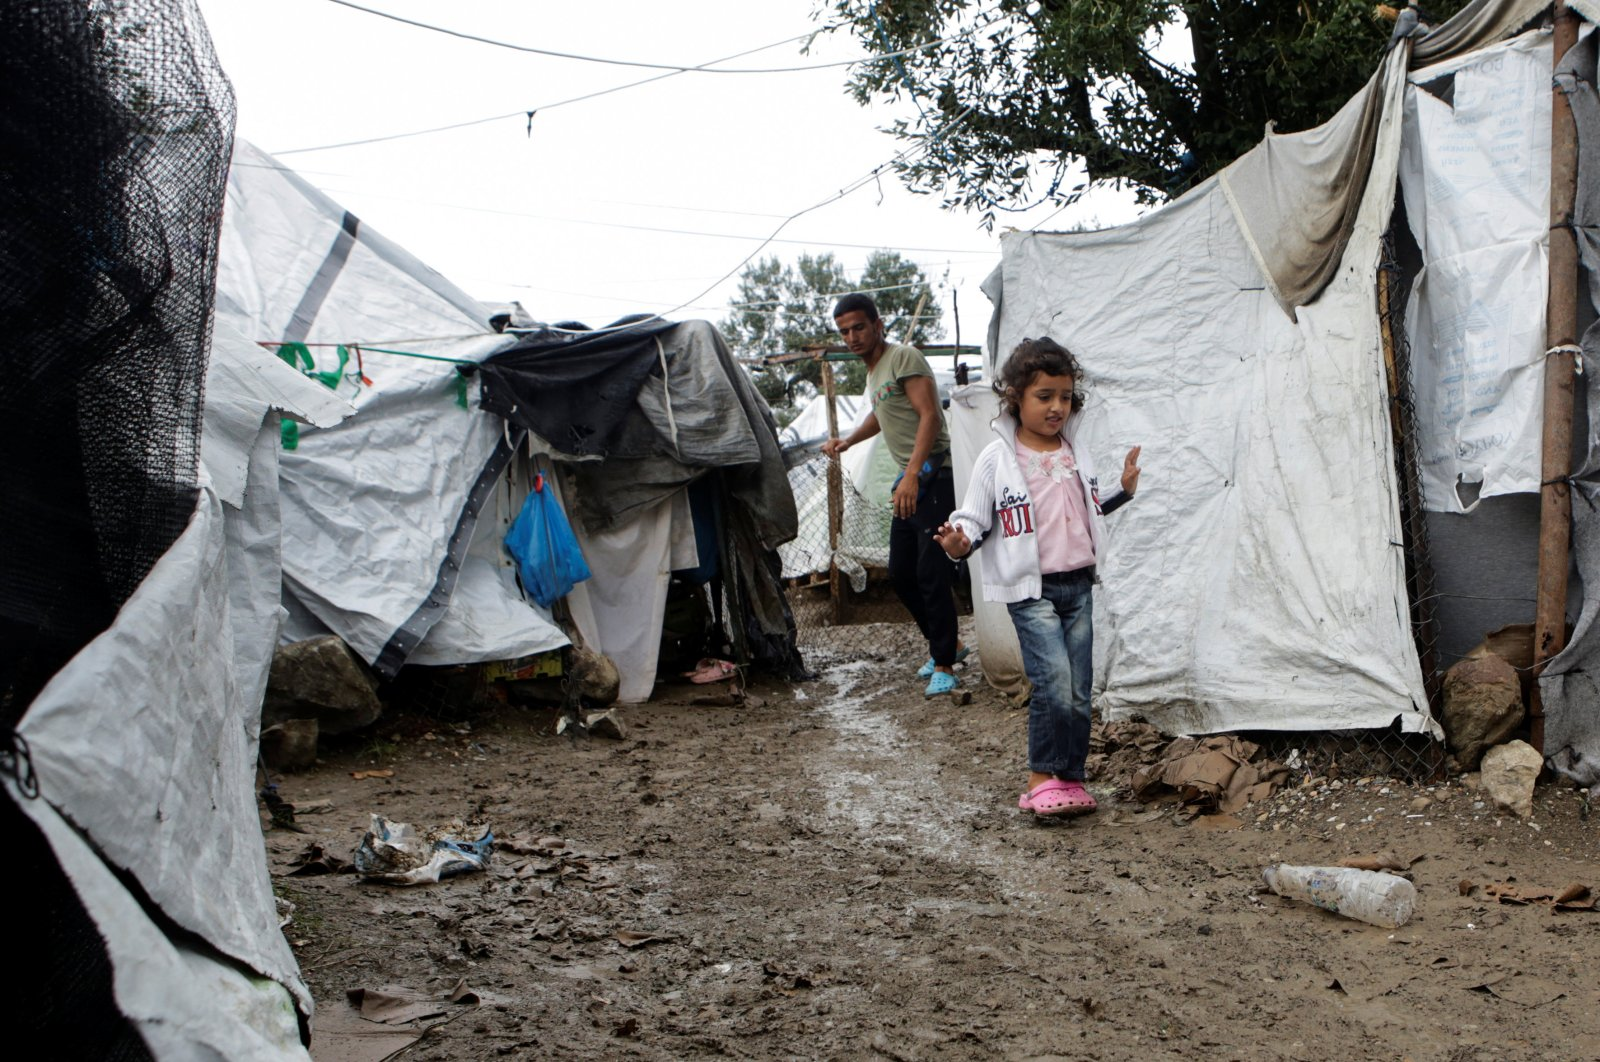 A girl walks next to tents at a makeshift camp for refugees and migrants next to the Moria camp, following rainfall on the island of Lesbos, Greece, Oct. 8, 2019. (Reuters Photo)